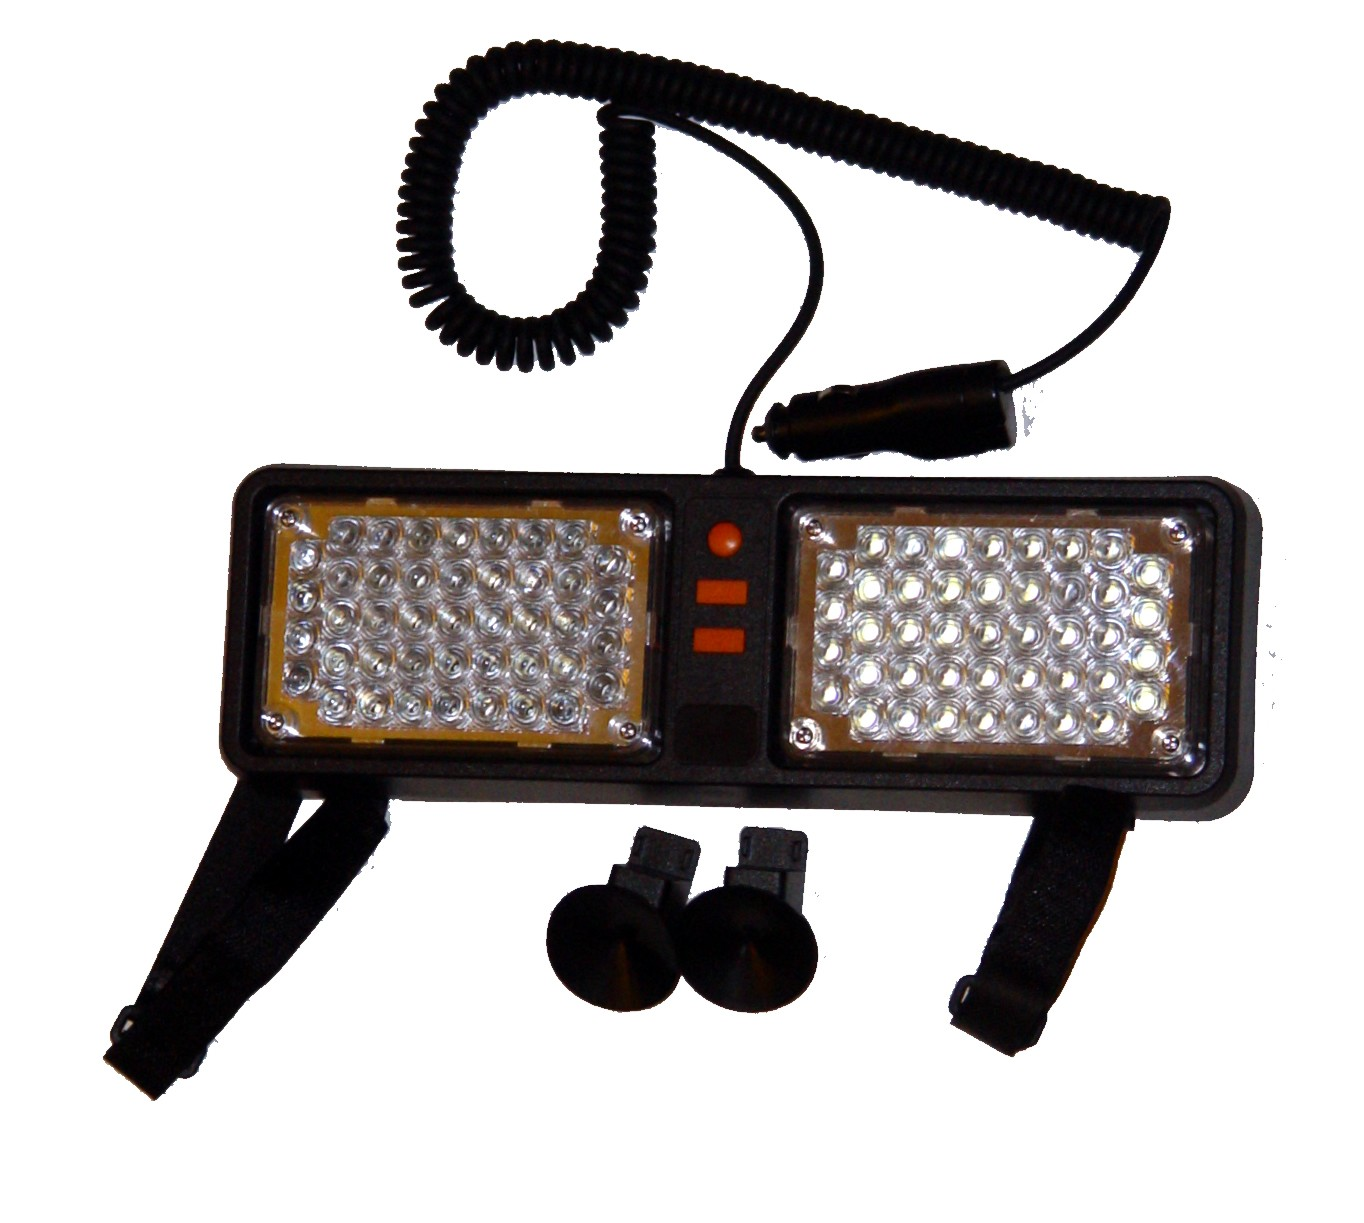 idjnow light shot led american big lights strobe dj lighting